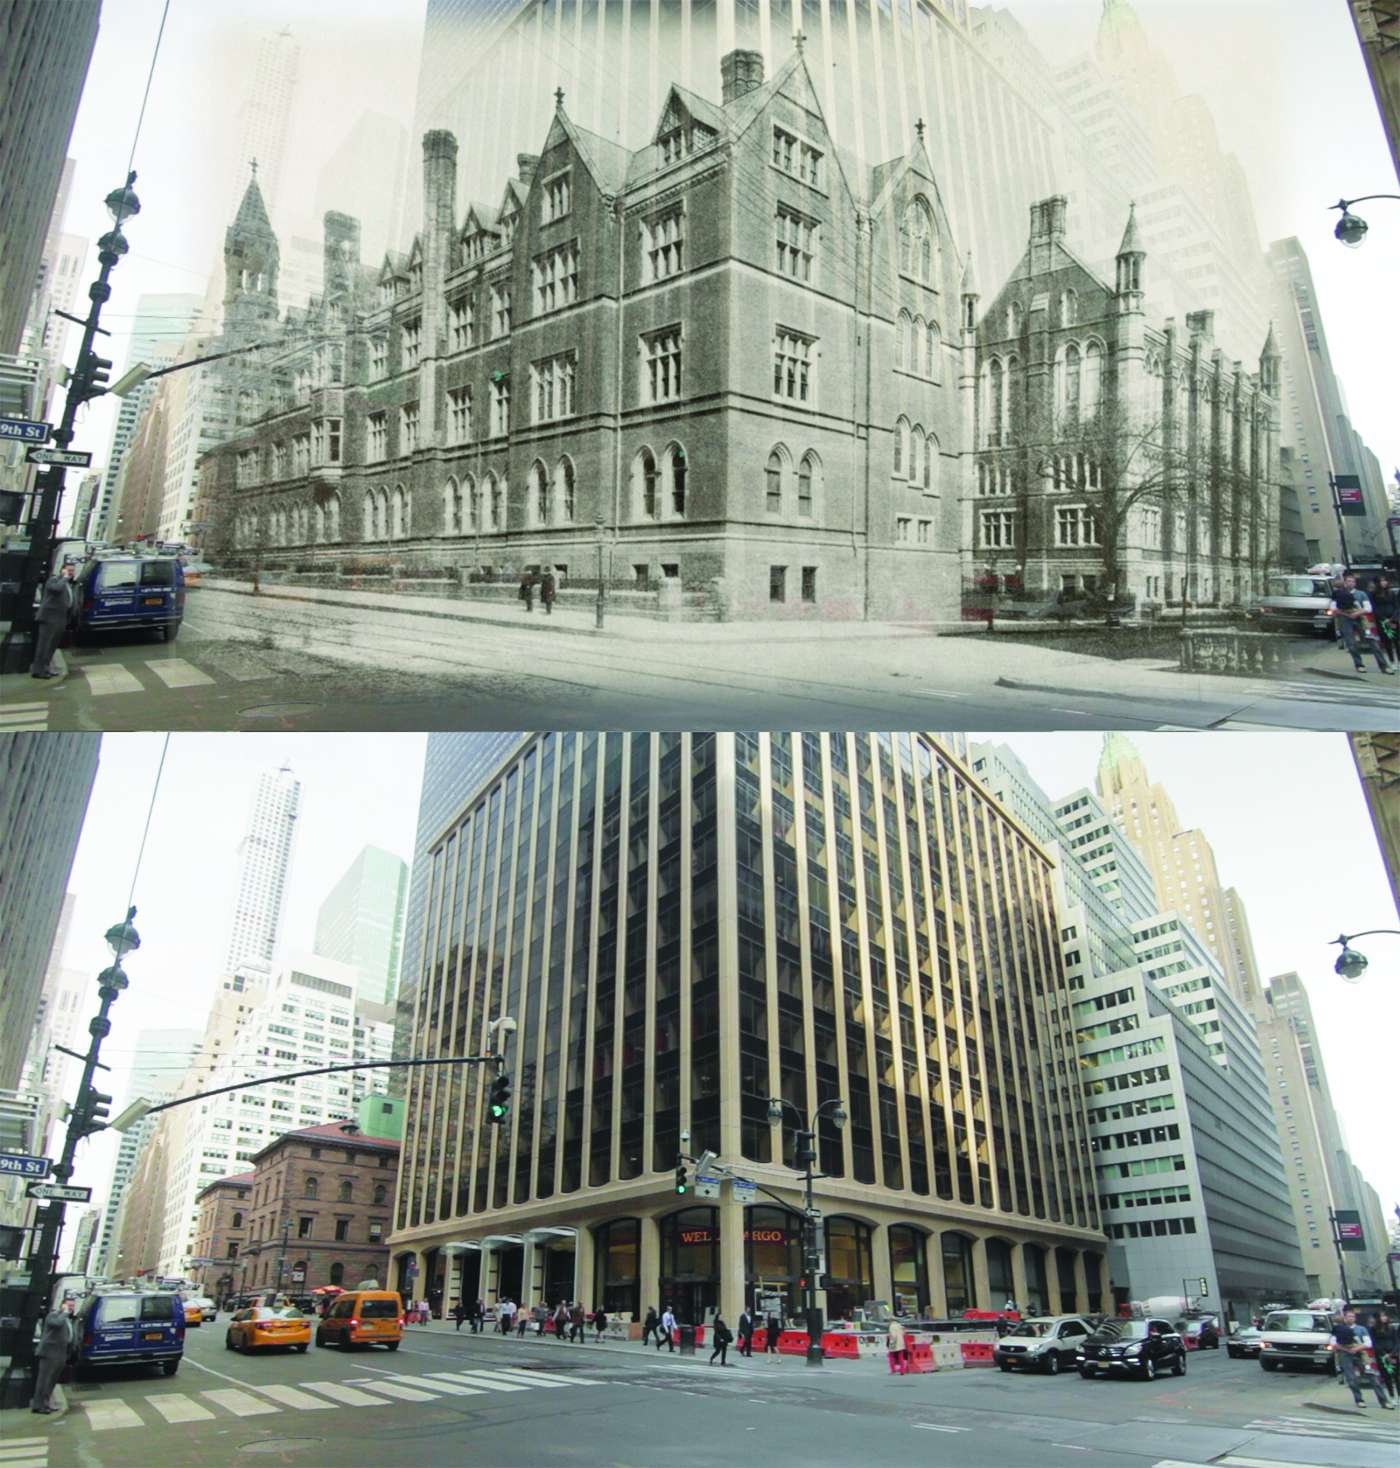 Columbia University's campus once bordered the corner of 49th Street and Madison Avenue